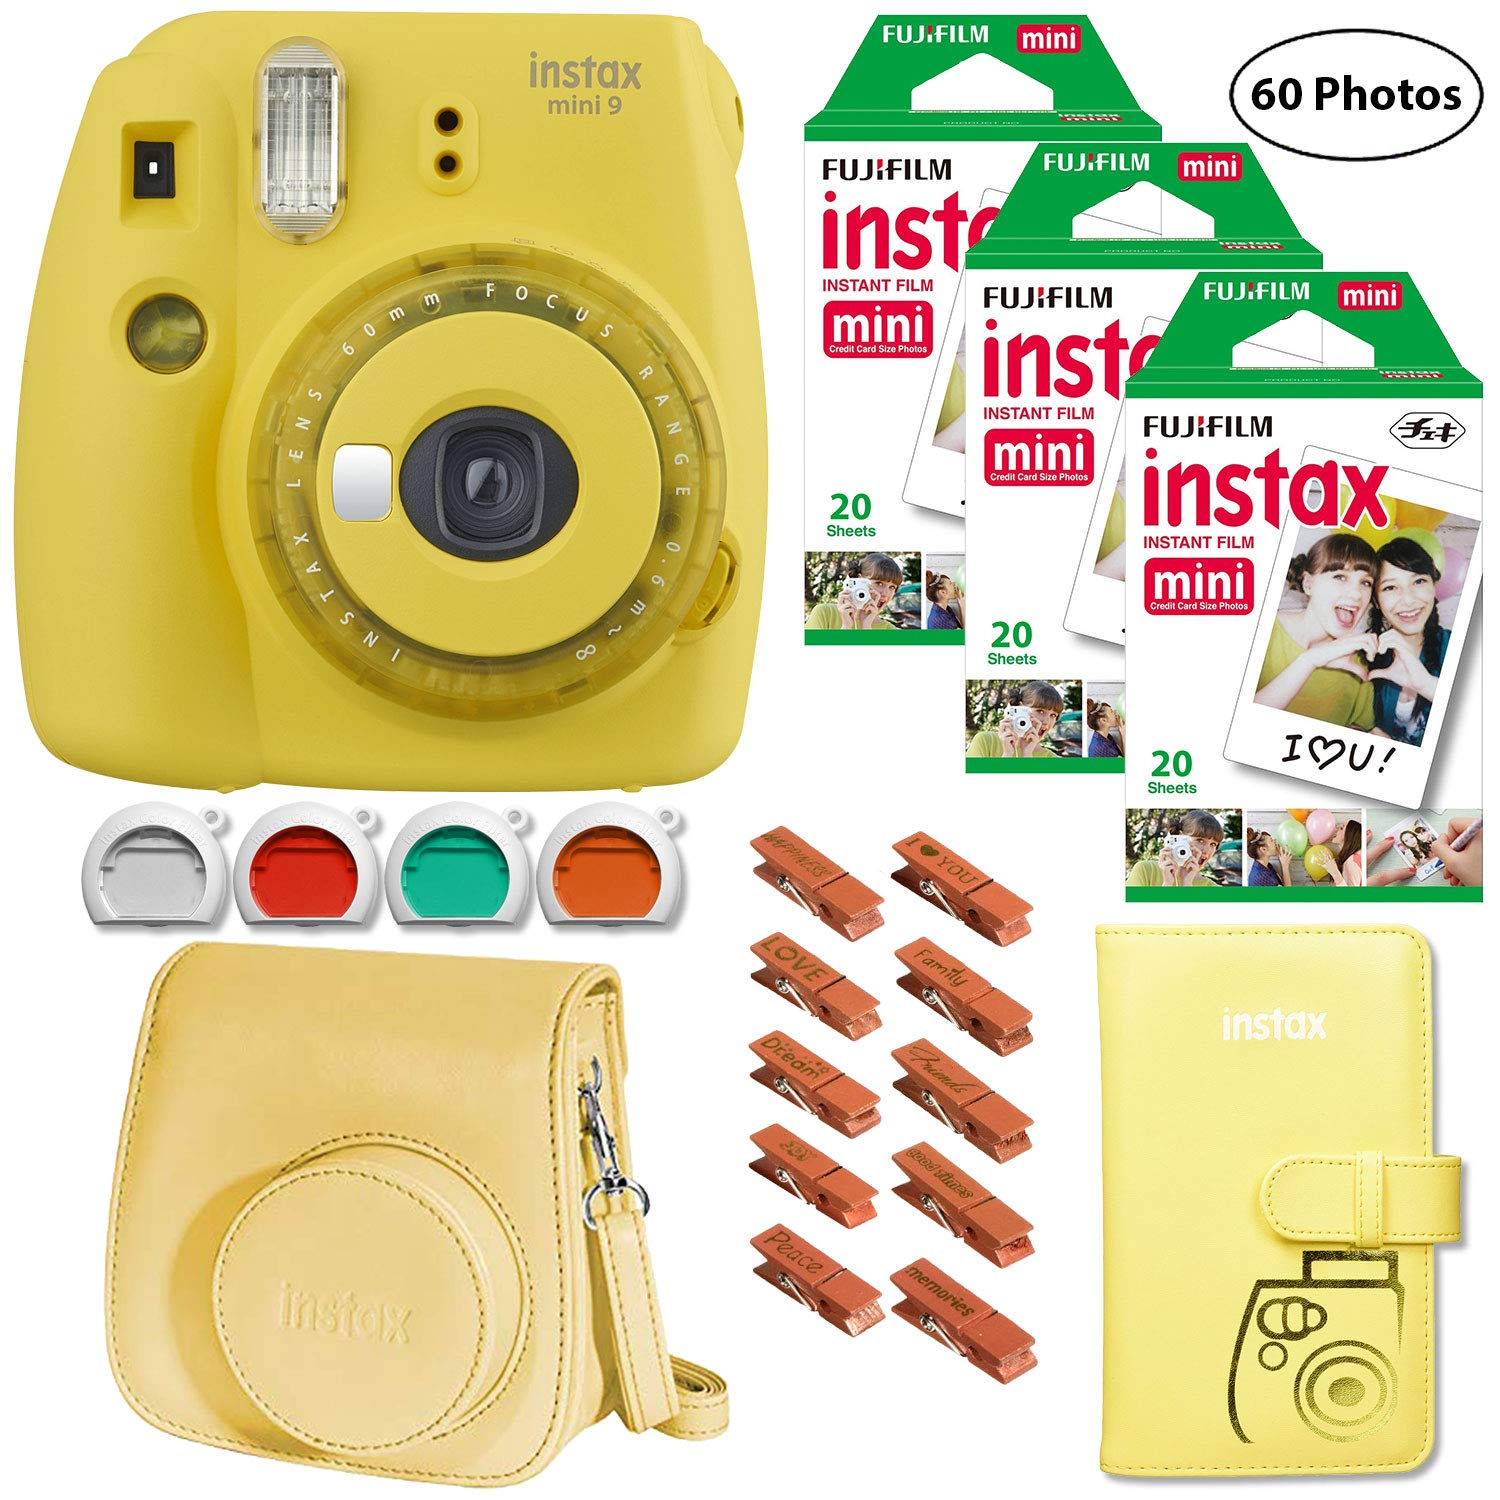 Fujifilm Instax Mini 9 (Yellow with Clear Accents), 3X Instax Film (60 Sheets), Groovy Case, Accordion Album and Hanging Pegs